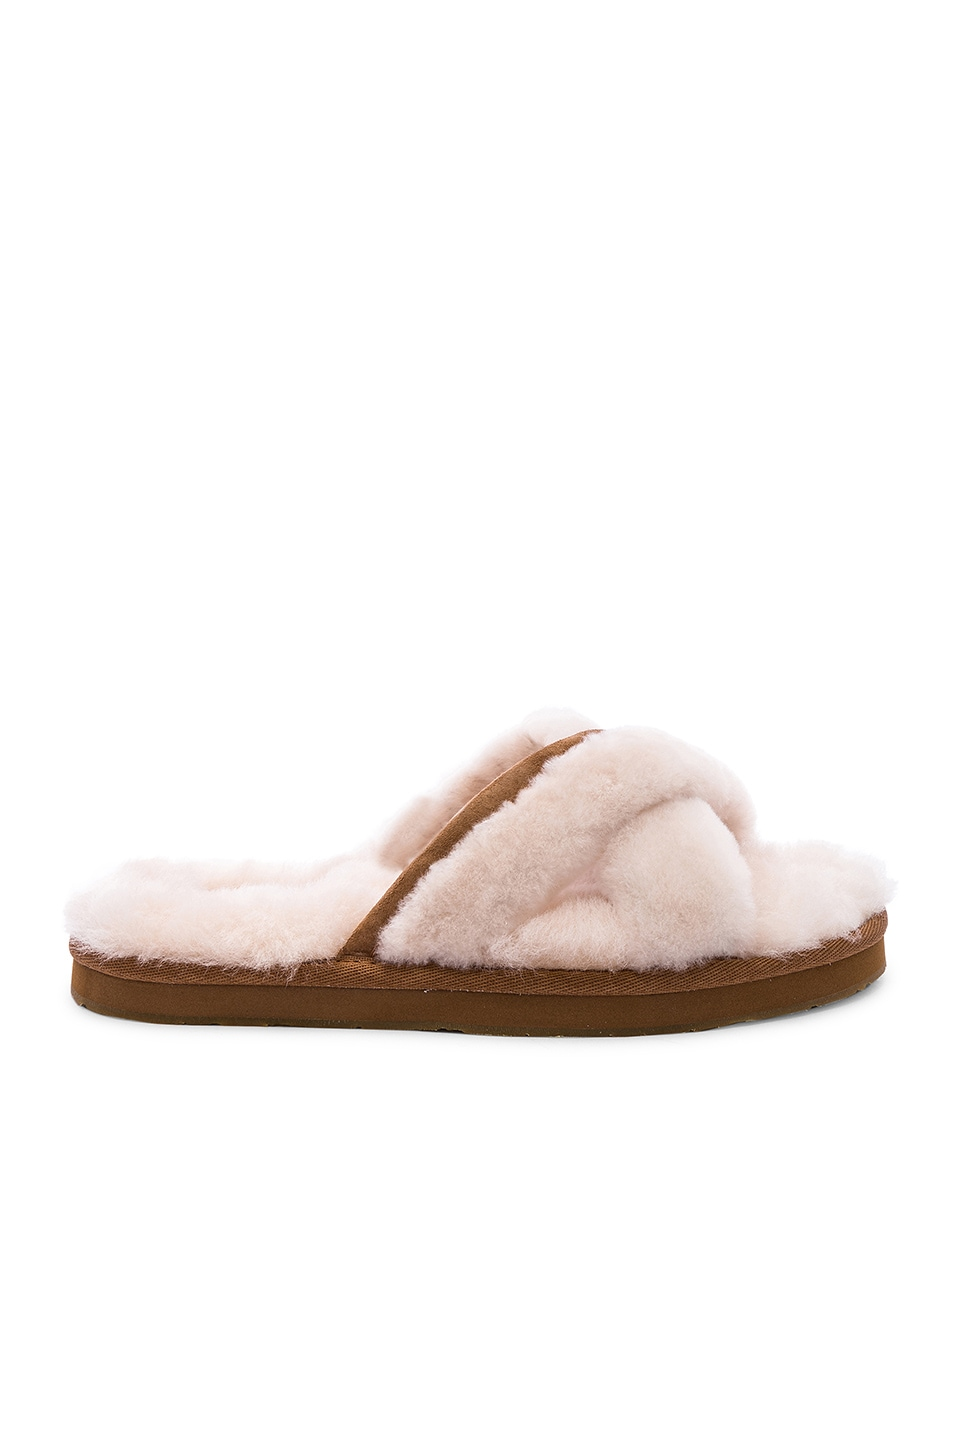 UGG Abela Slipper in Natural